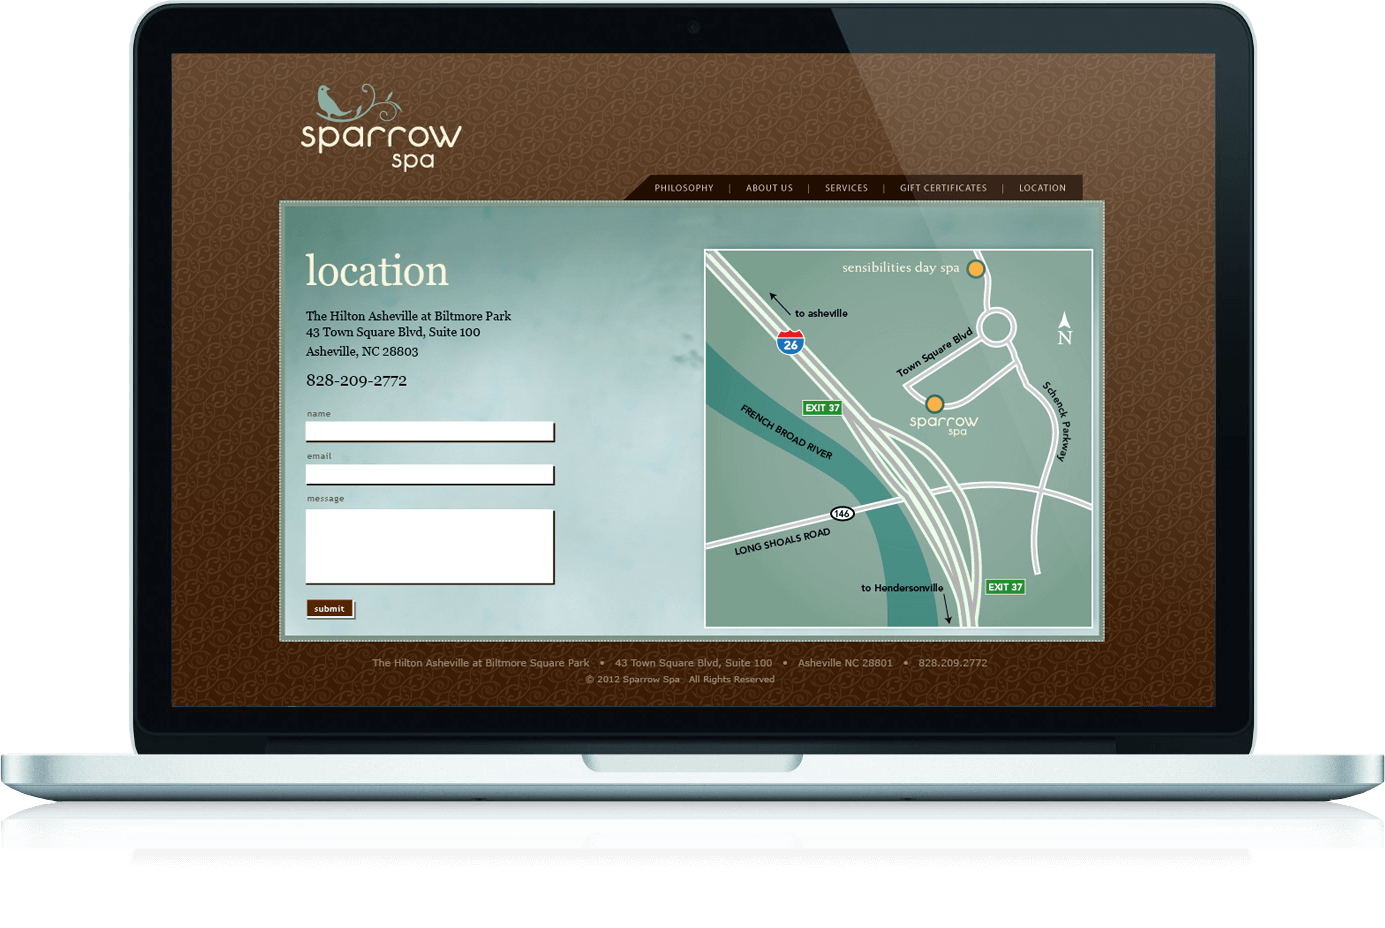 Sparrow Spa website contact page with custom illustrated map and contact form.